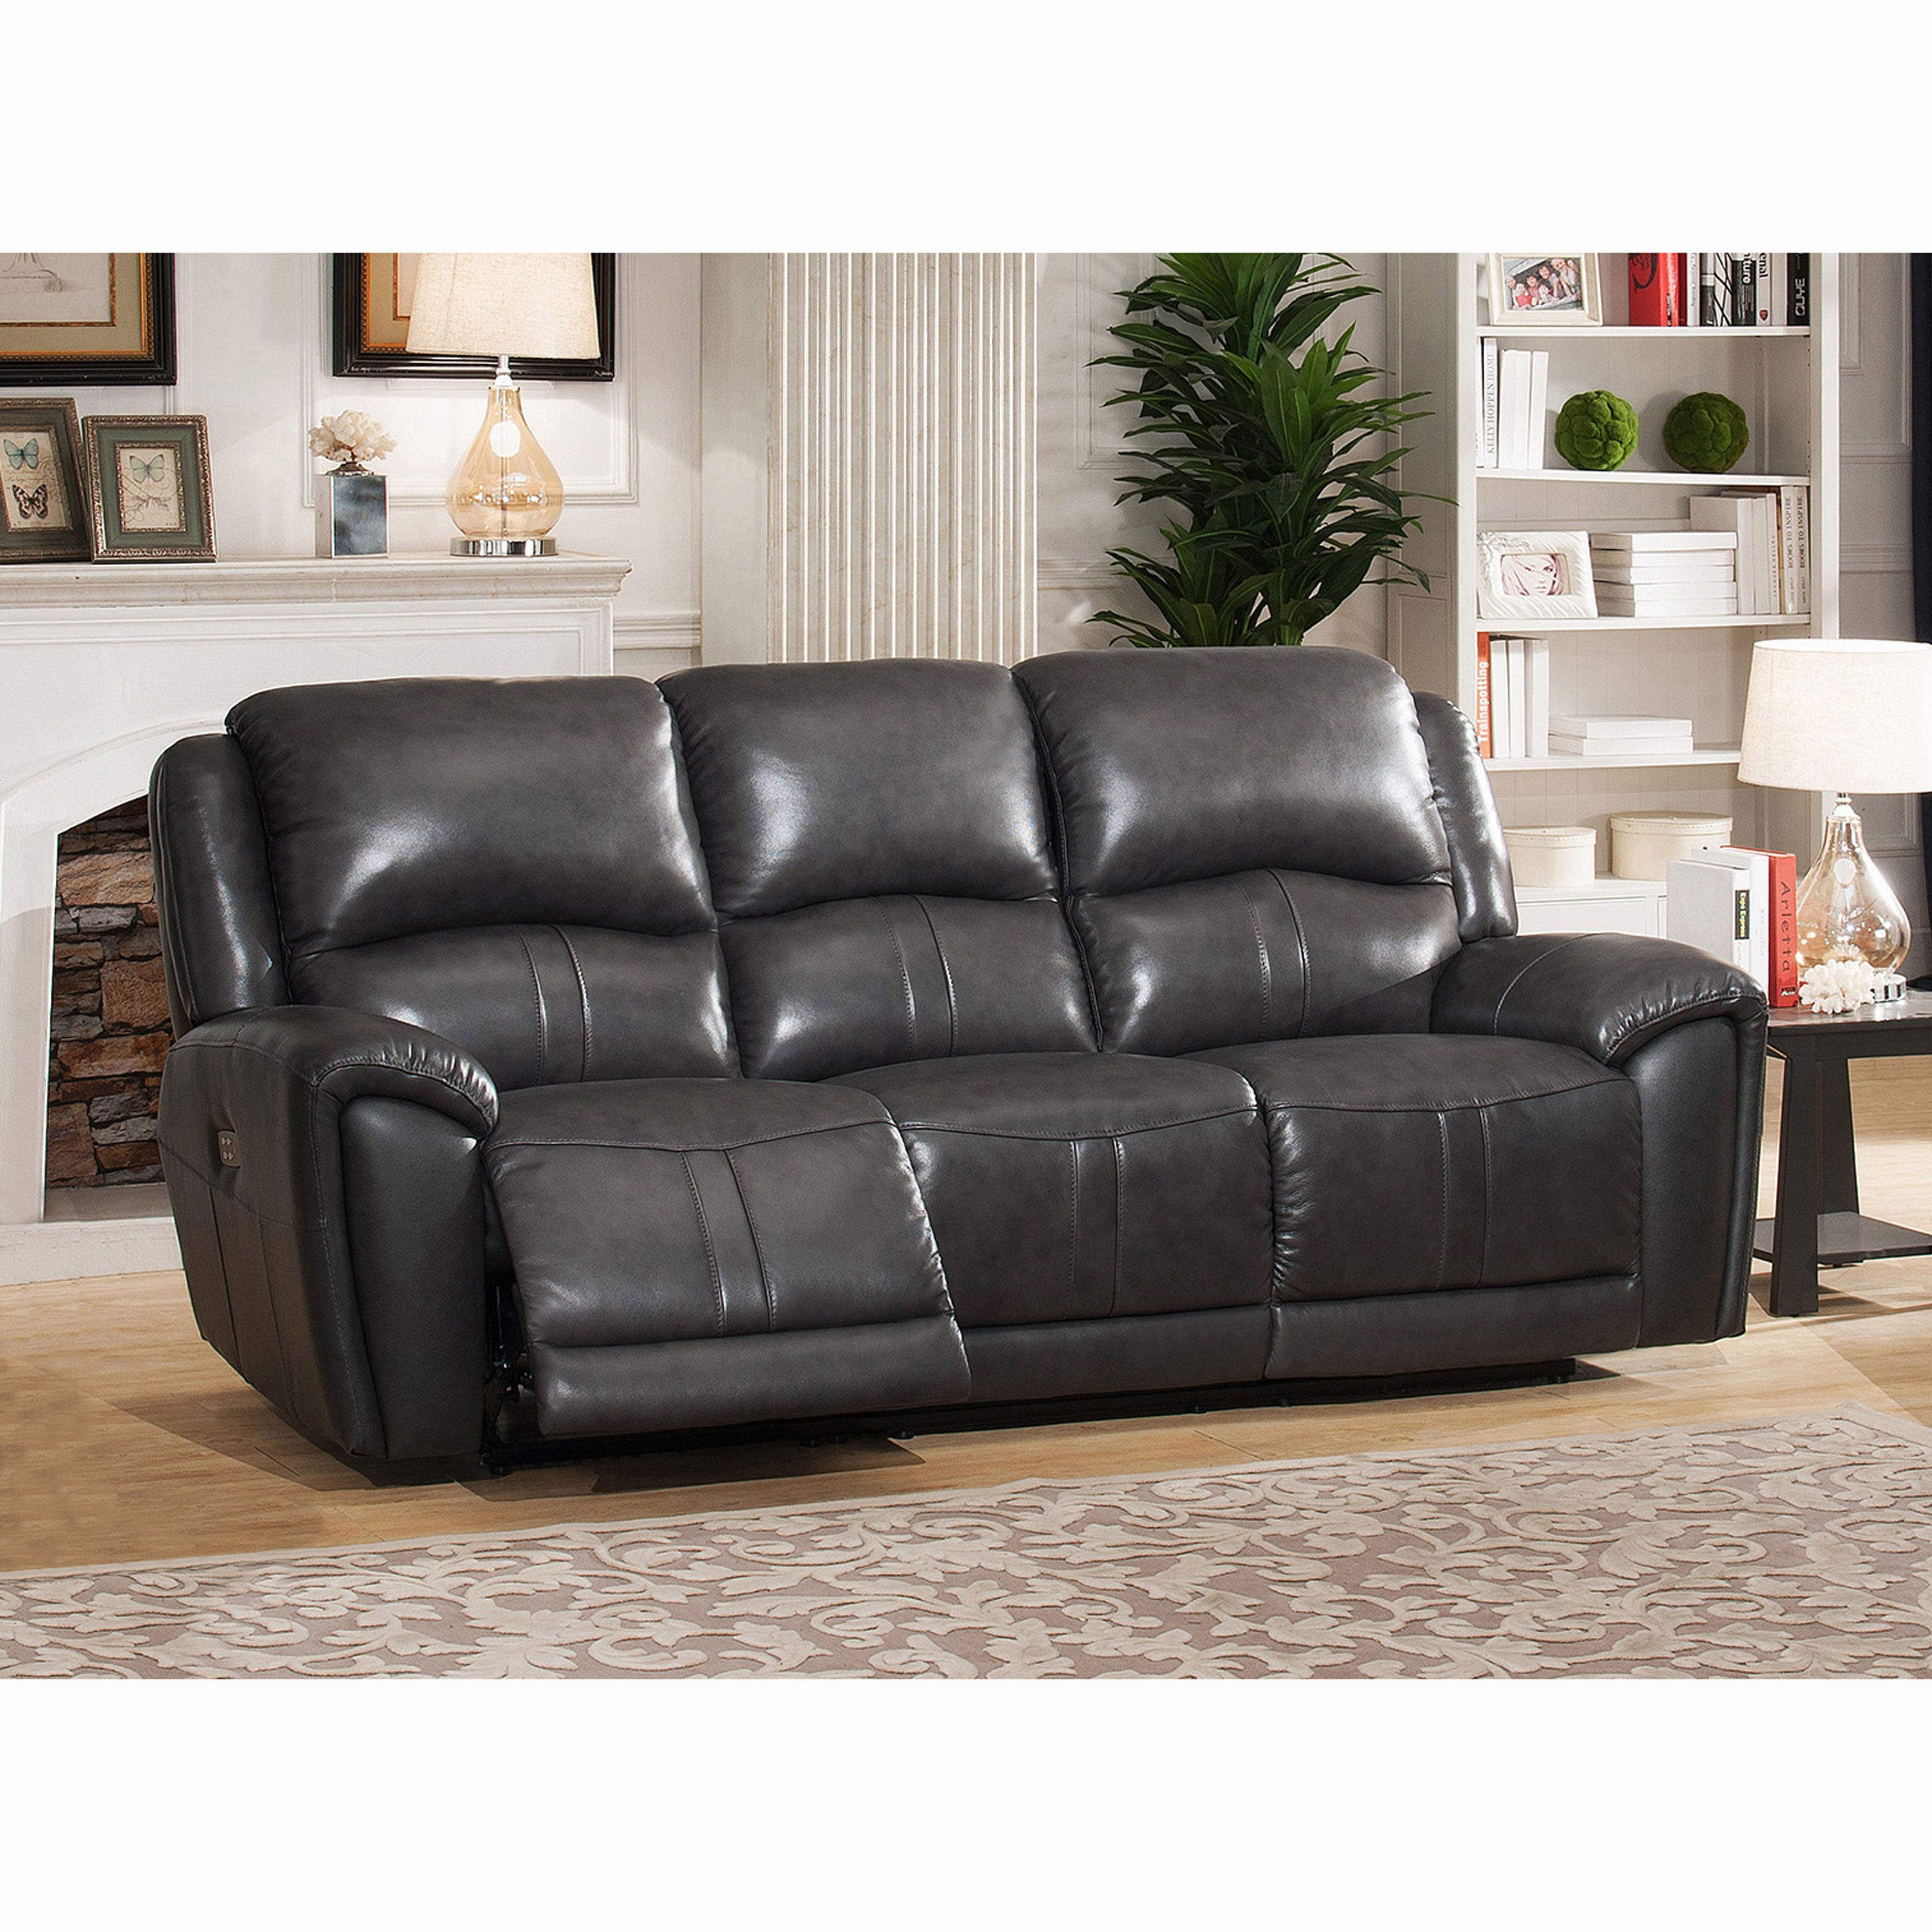 Miraculous Ari Grey Top Grain Leather Power Reclining Sofa With Power Bralicious Painted Fabric Chair Ideas Braliciousco